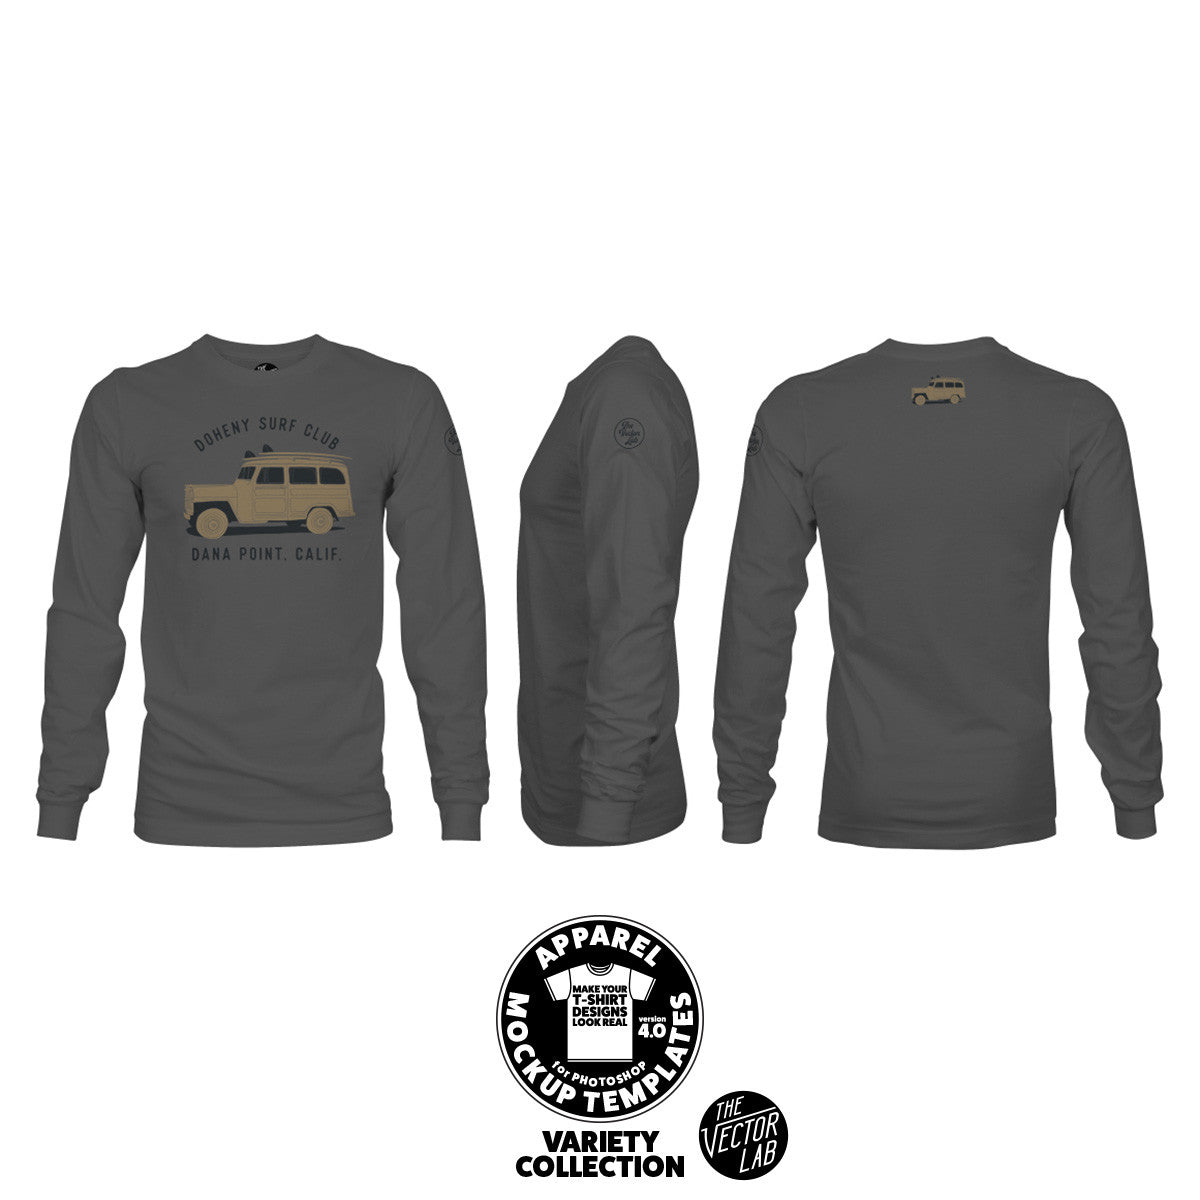 Black t shirt mock up -  Men S Long Sleeve T Shirt Mockup Templates For Photoshop